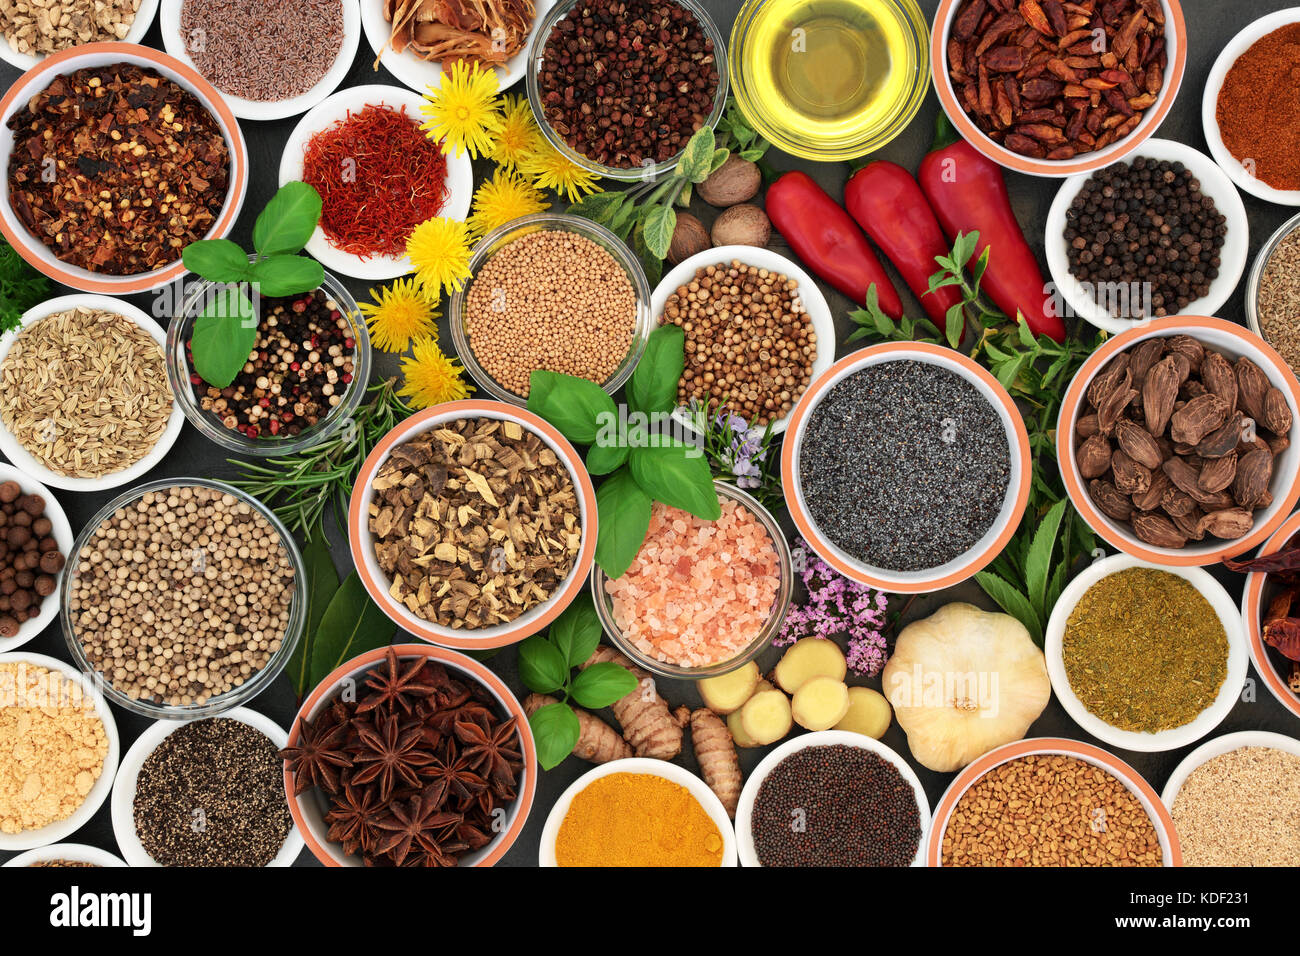 Fresh and dried herbs and spices in bowls and loose forming a colourful abstract background. Top view. - Stock Image